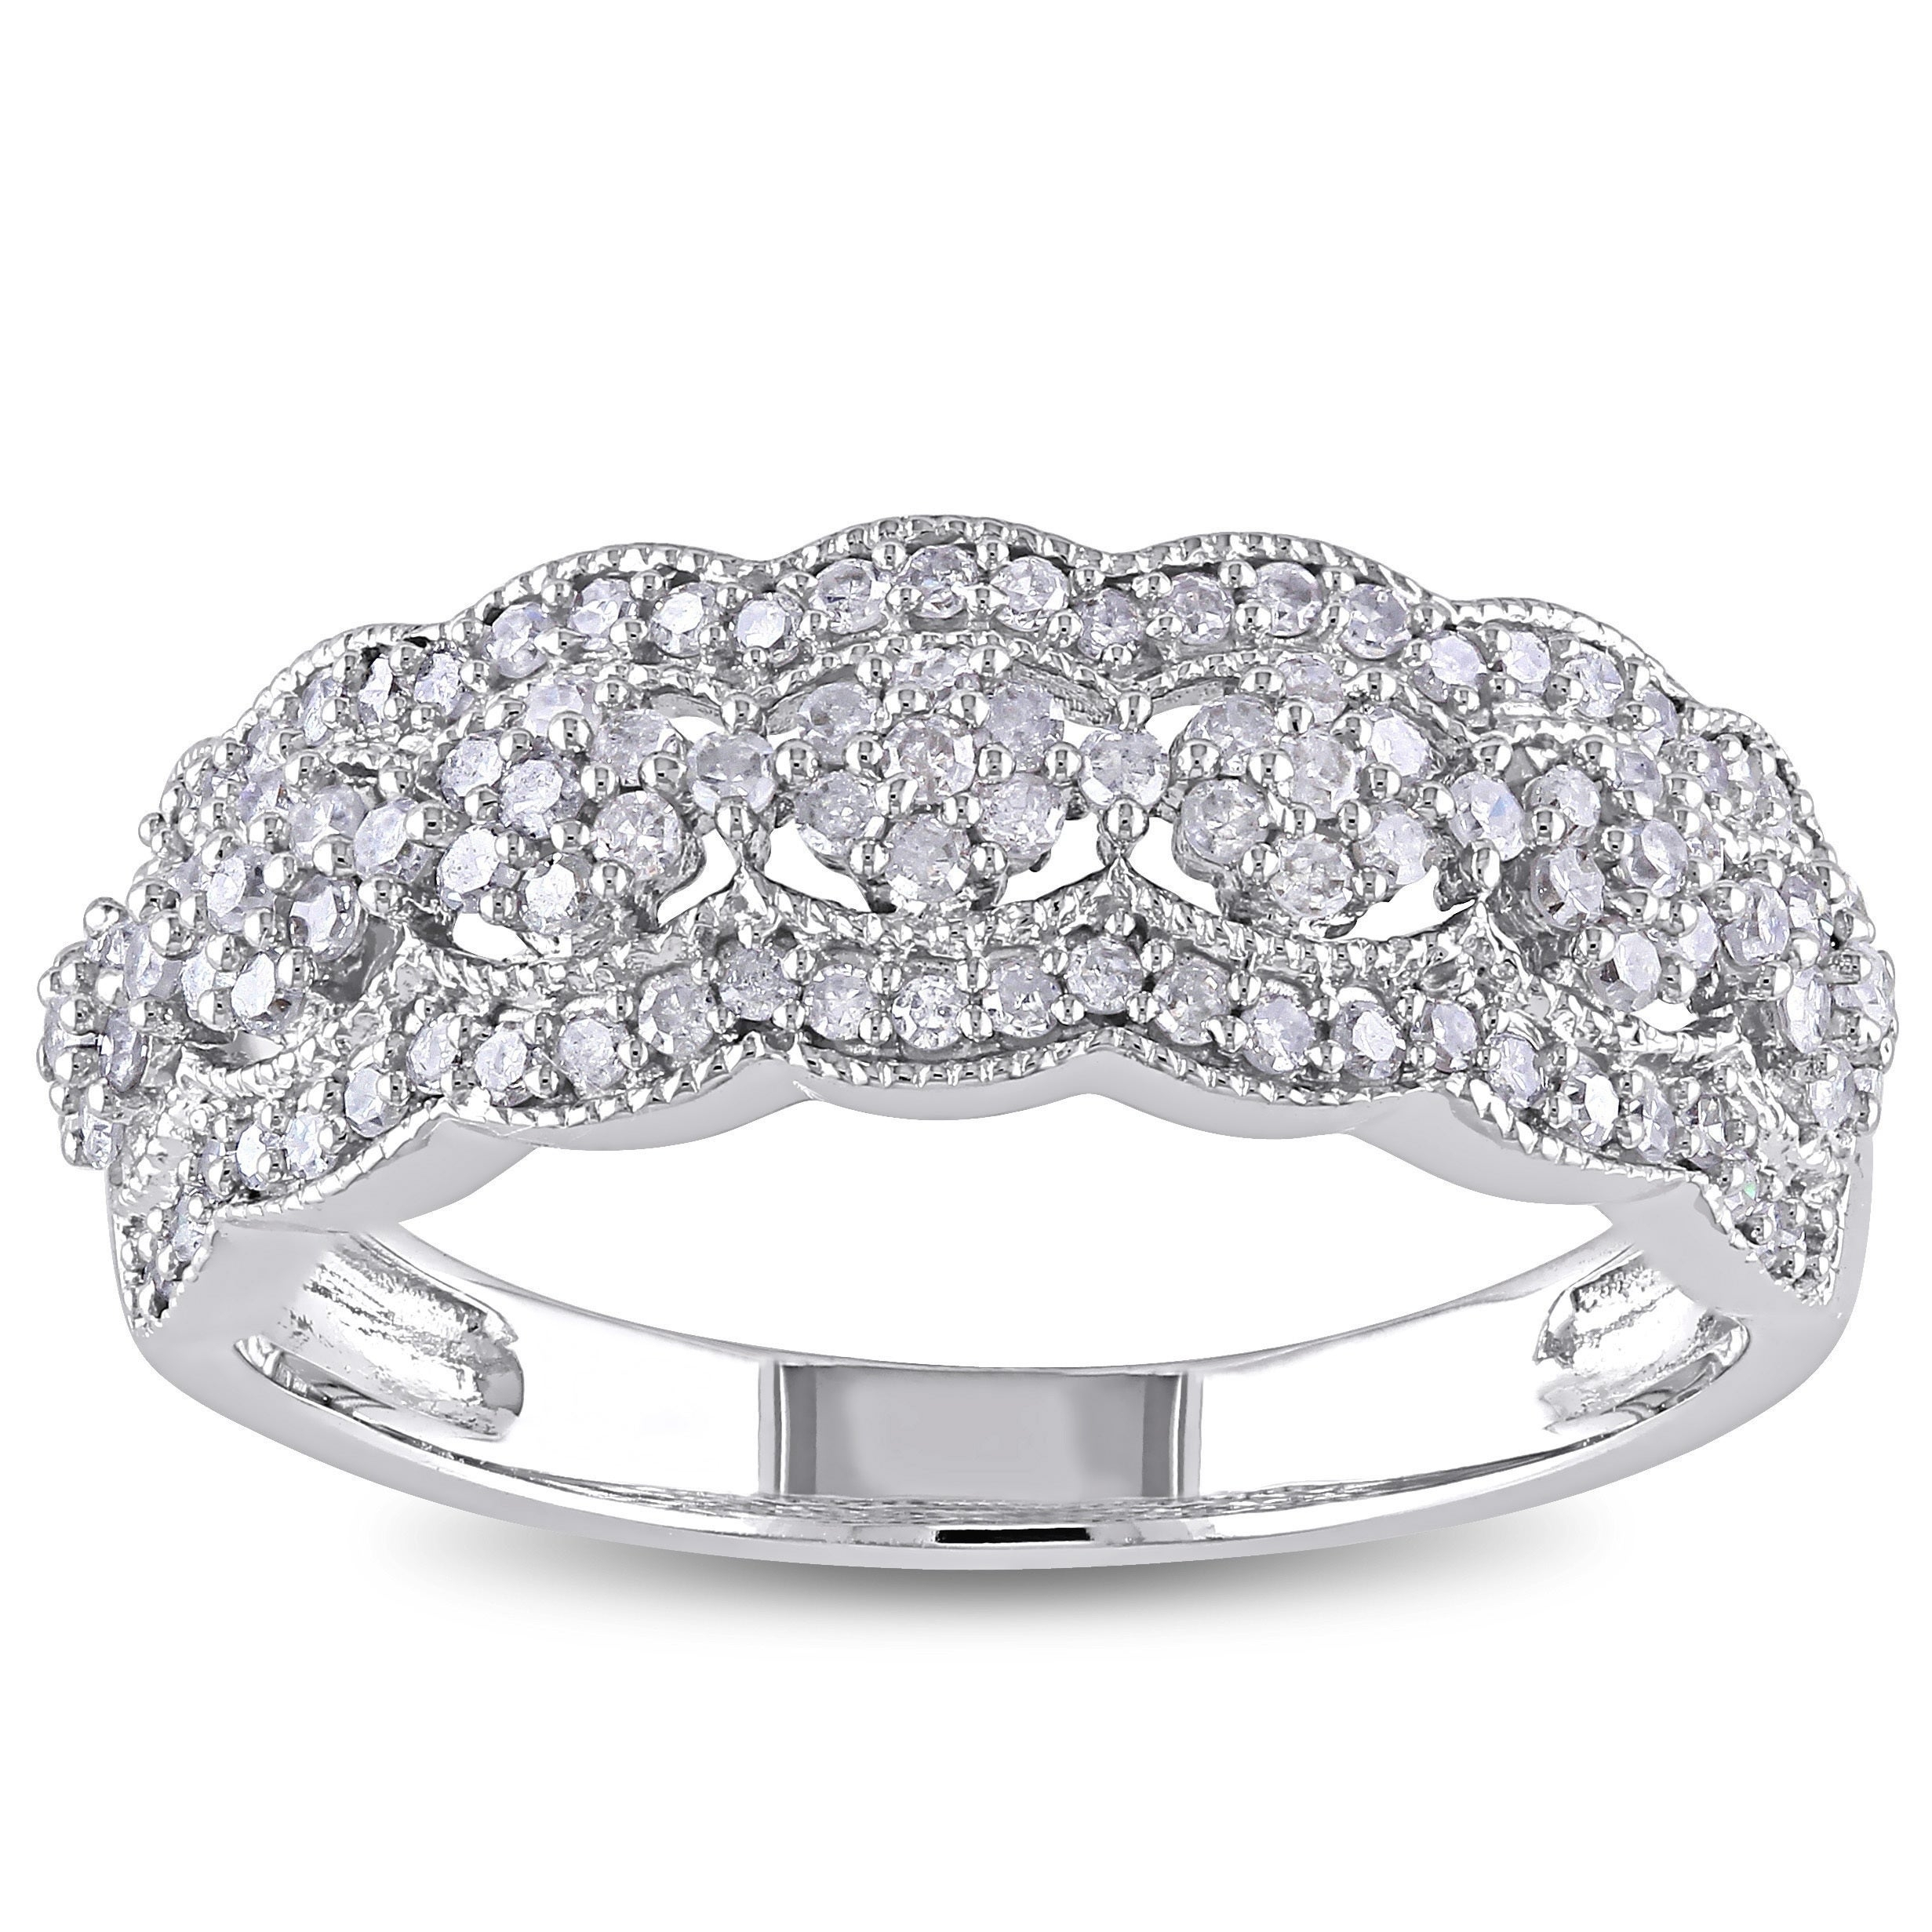 Miadora Signature 10K White Gold 1/2Ct Tdw Diamond Vintage Floral Anniversary Band Within Most Recently Released Diamond Braid Anniversary Bands In White Gold (Gallery 23 of 25)